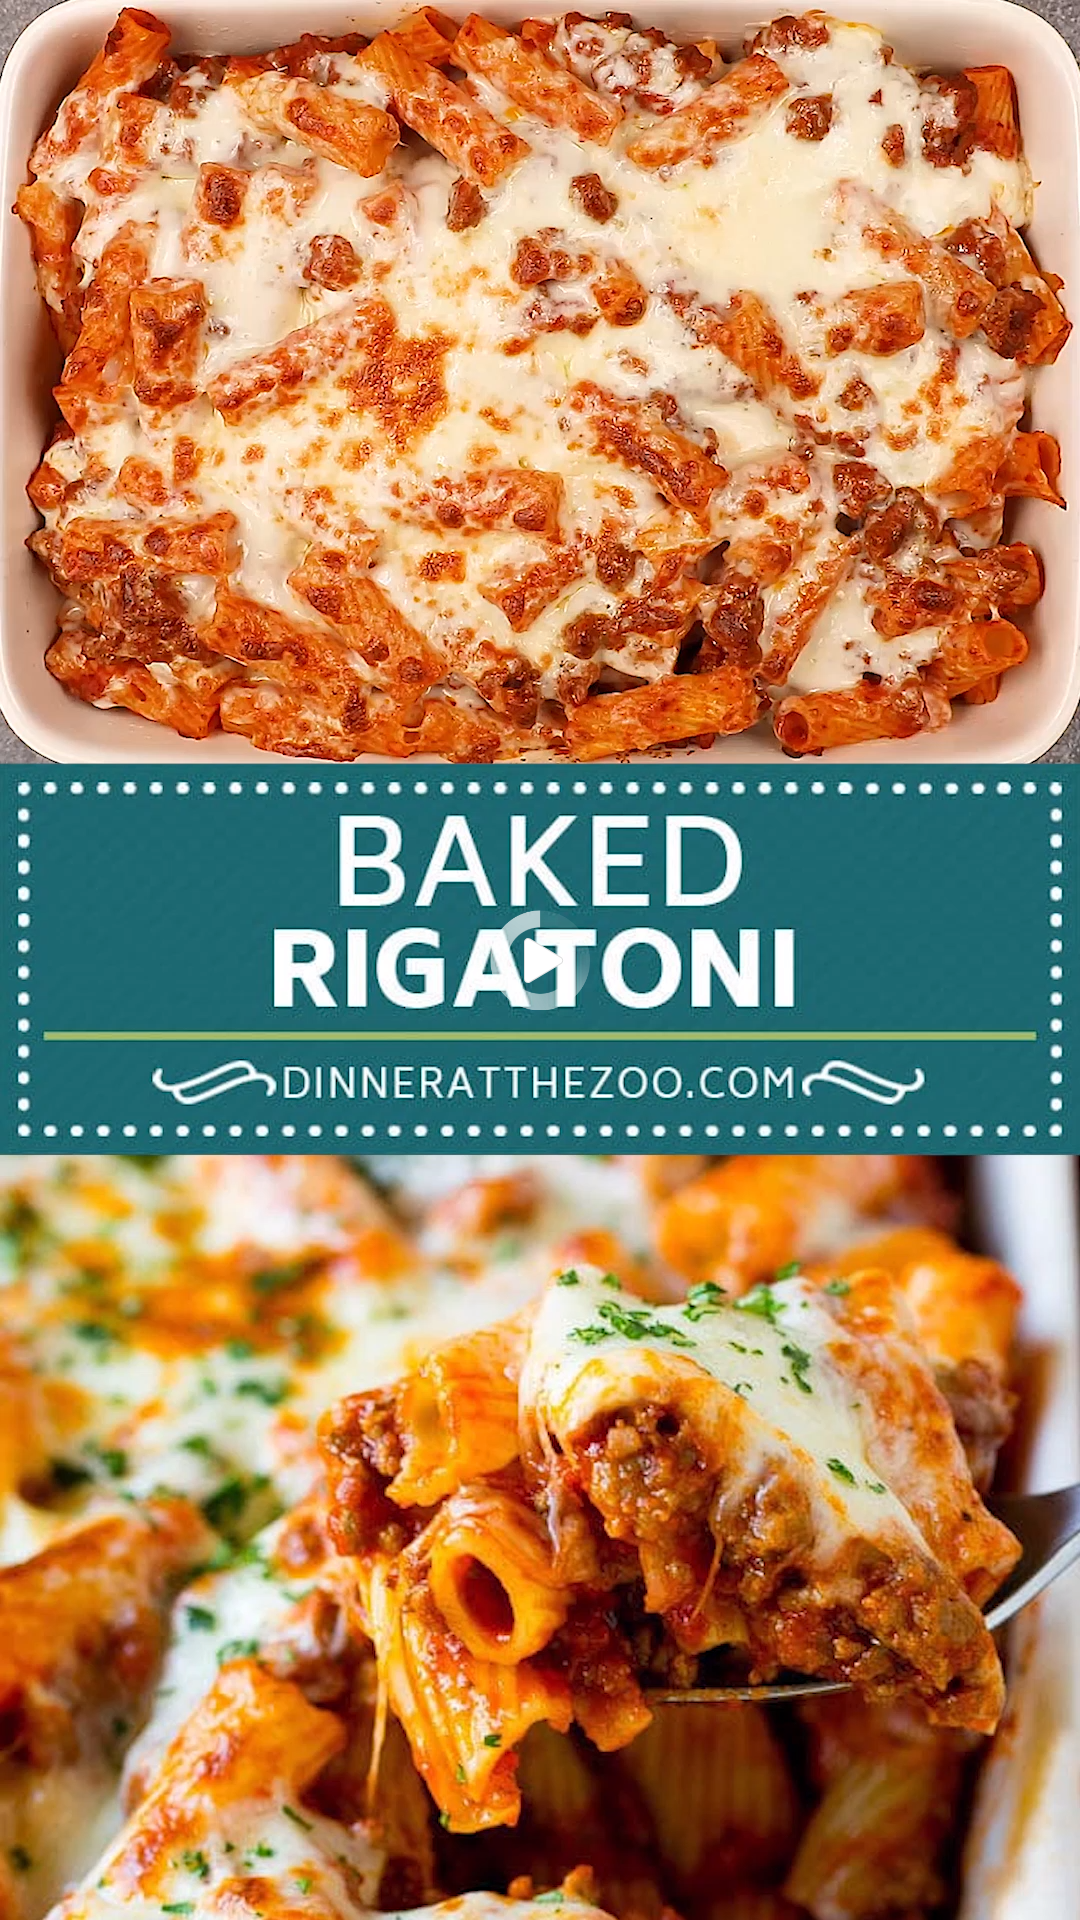 32 Great Pics And Memes To Improve Your Mood In 2021 Baked Pasta Recipes Beef Pasta Recipes Italian Recipes